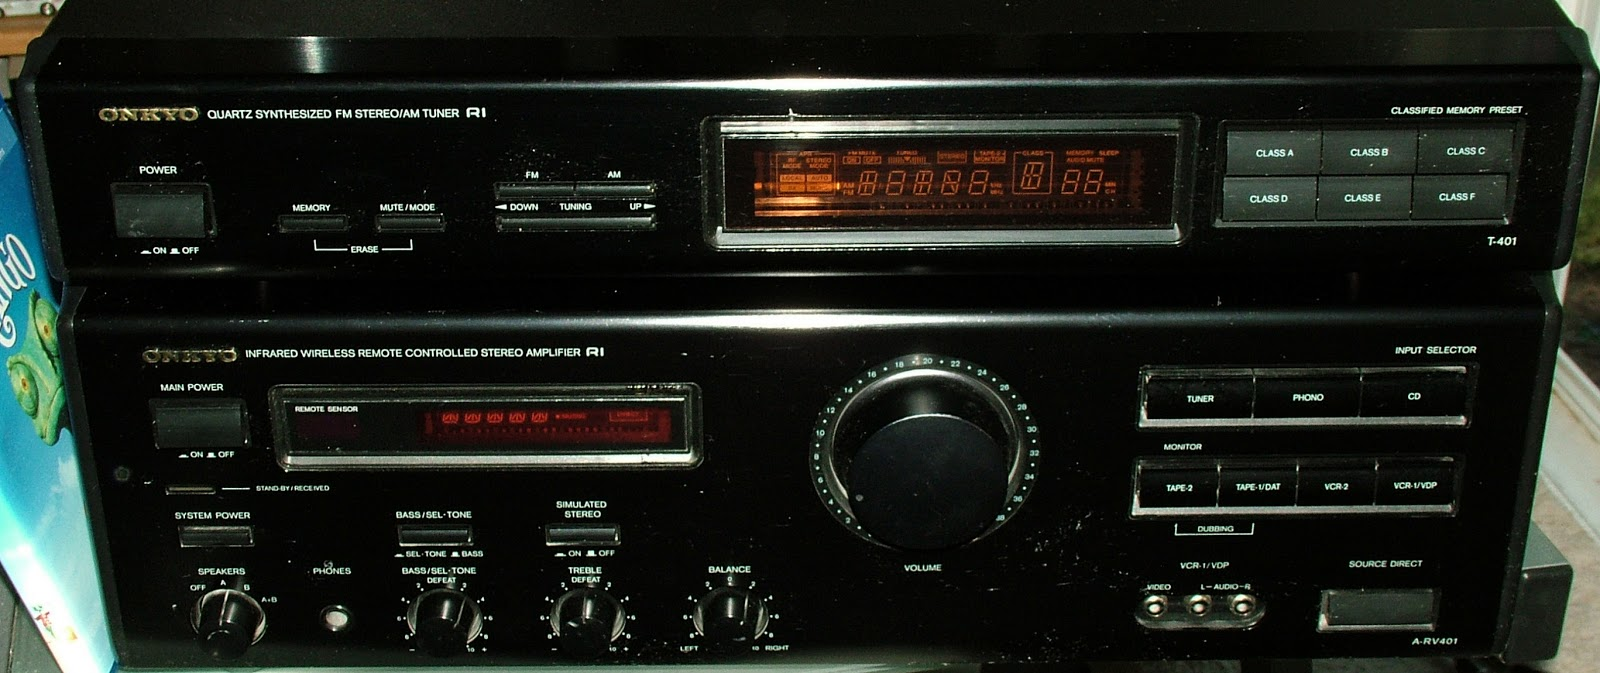 Older ONKYO finds replace modern SONY receiver in here